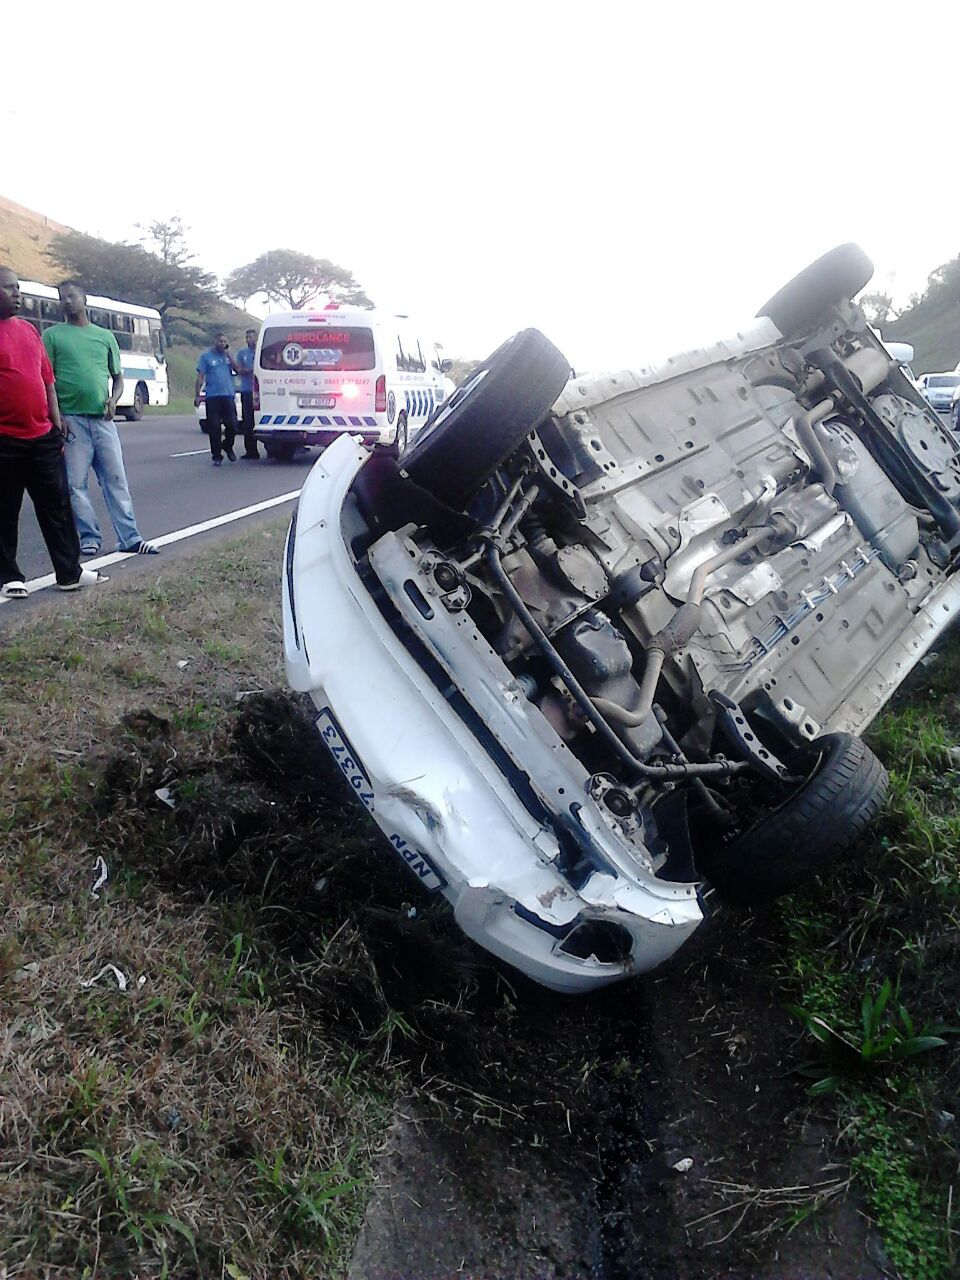 Two injured in single vehicle rollover on the N2 near Umgeni